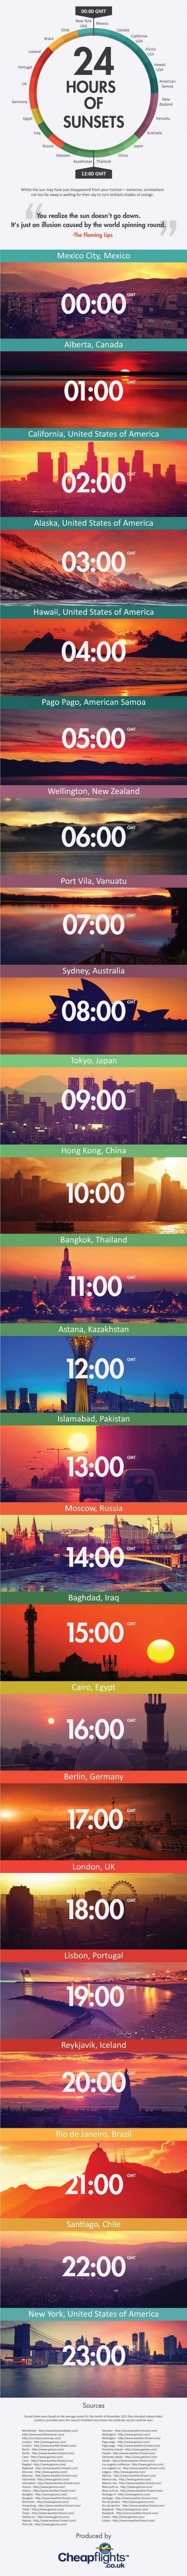 24 Hours of Sunsets Around the World #infographic